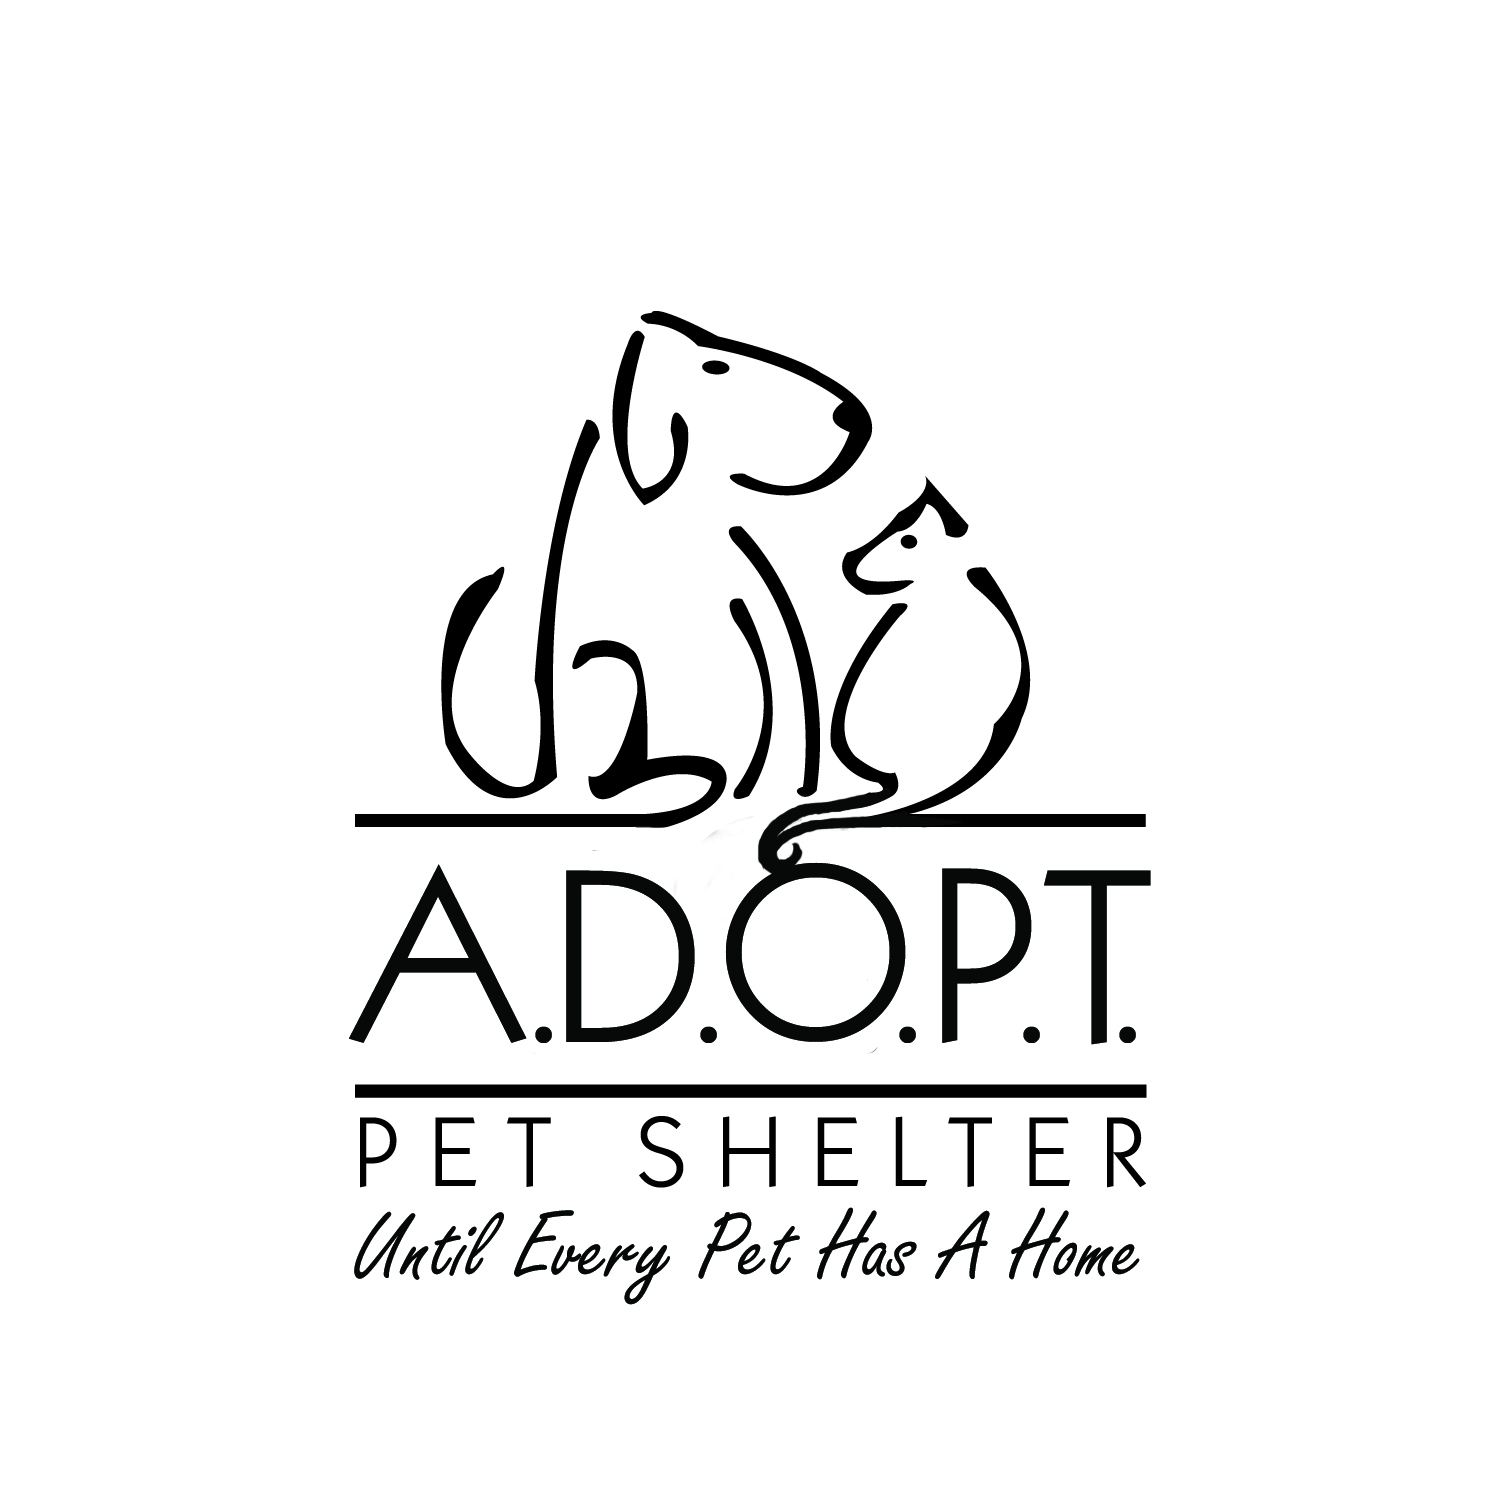 Top Ten Cute Adopt Pet Shelter